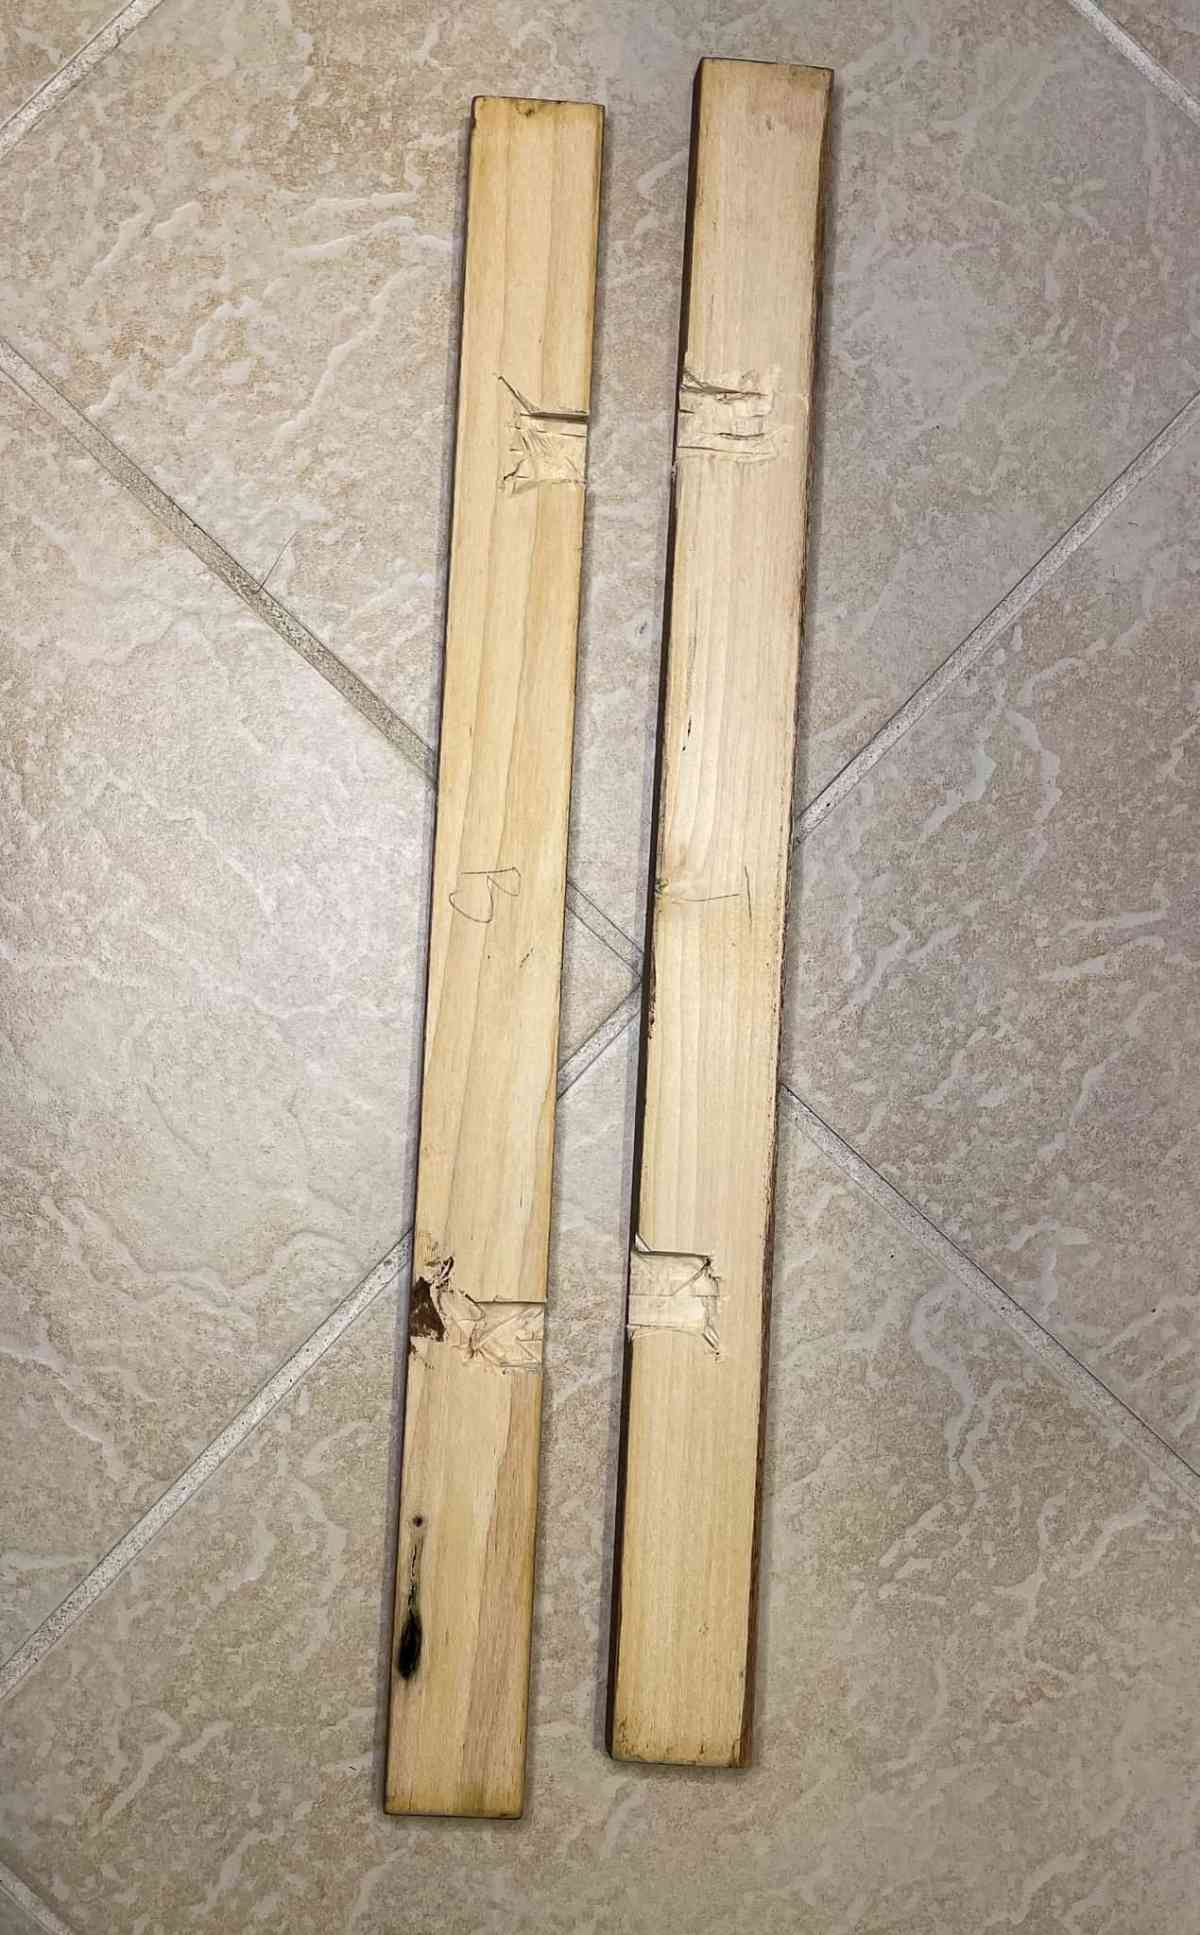 stick on frames for bathroom mirrors, mirror frame, frames for mirrors, builder grade mirror